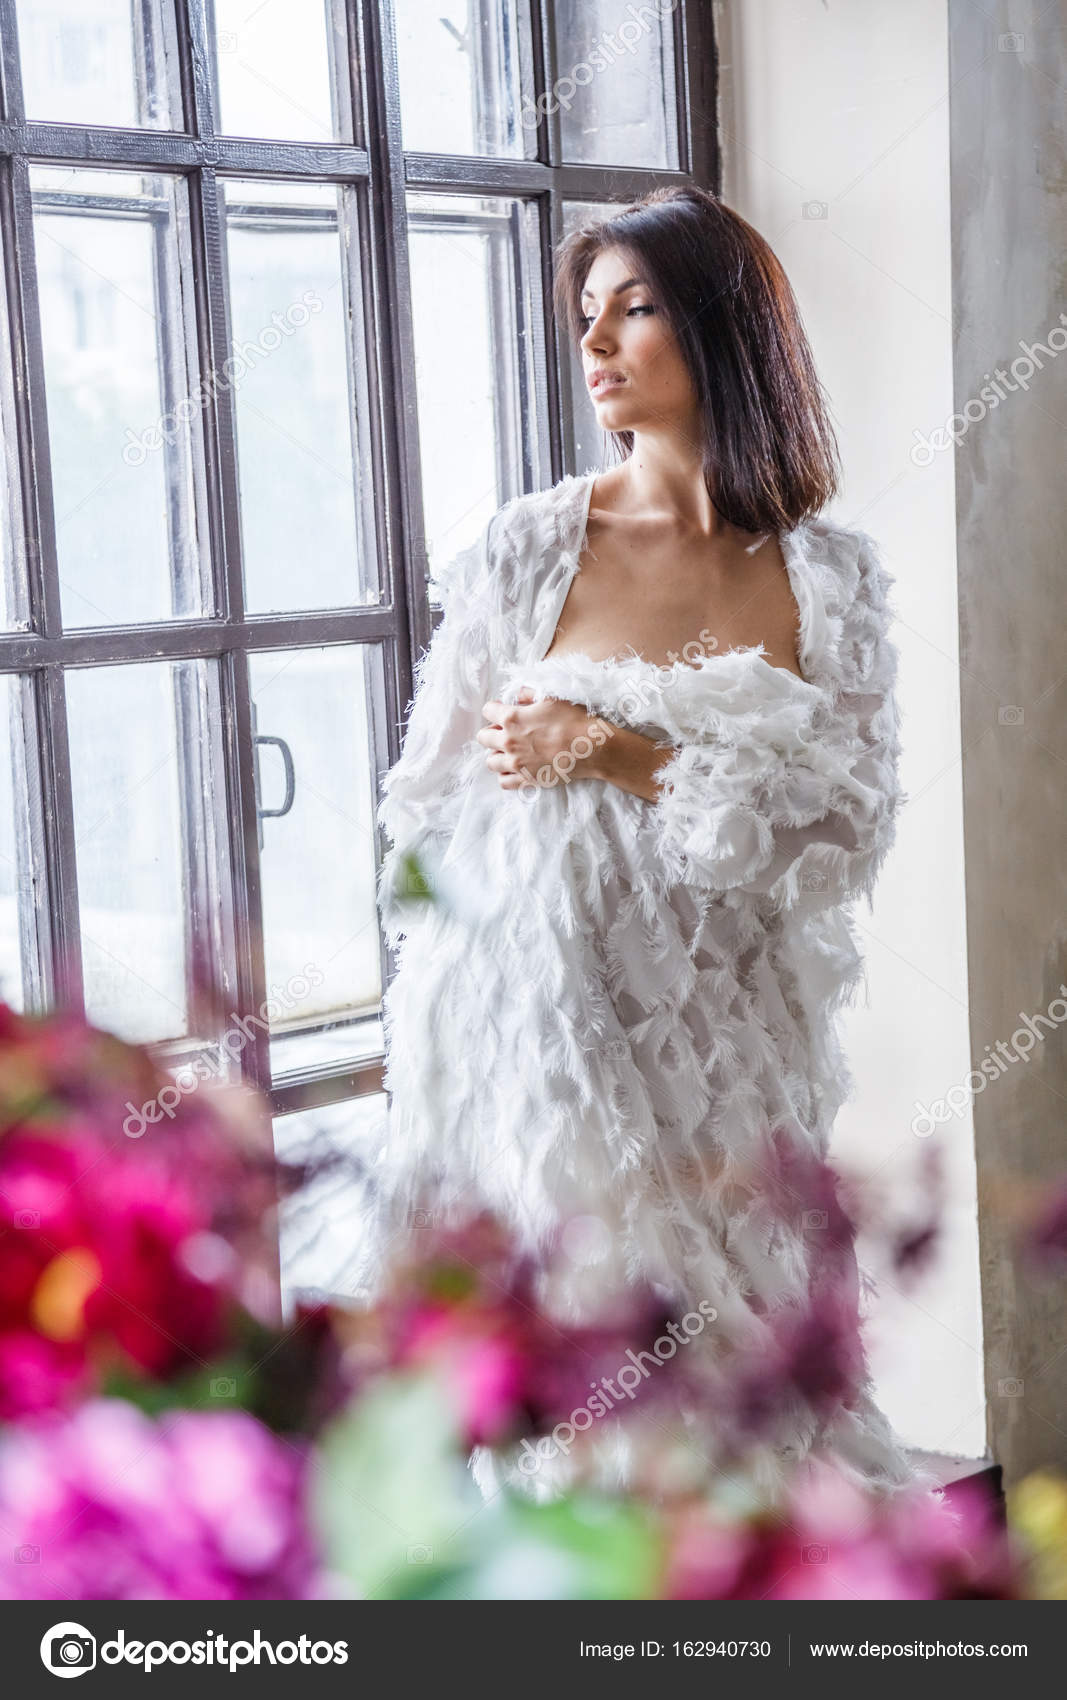 woman in dressing gown posing — Stock Photo © schummyone #162940730